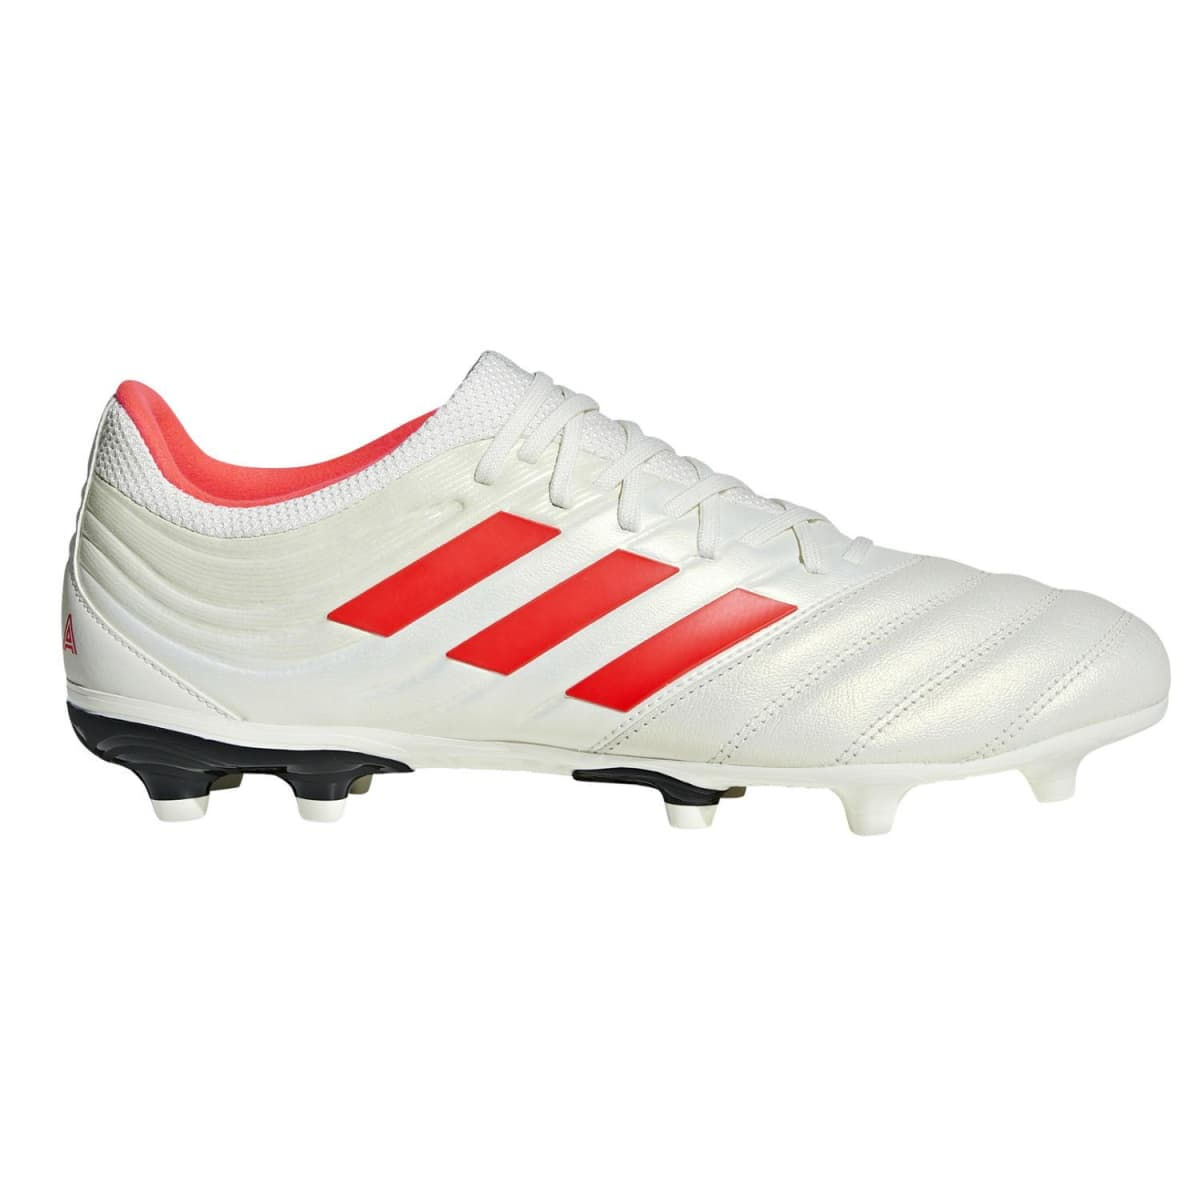 the best attitude b6cda 0385a adidas Copa 19.3 Soccer Boots